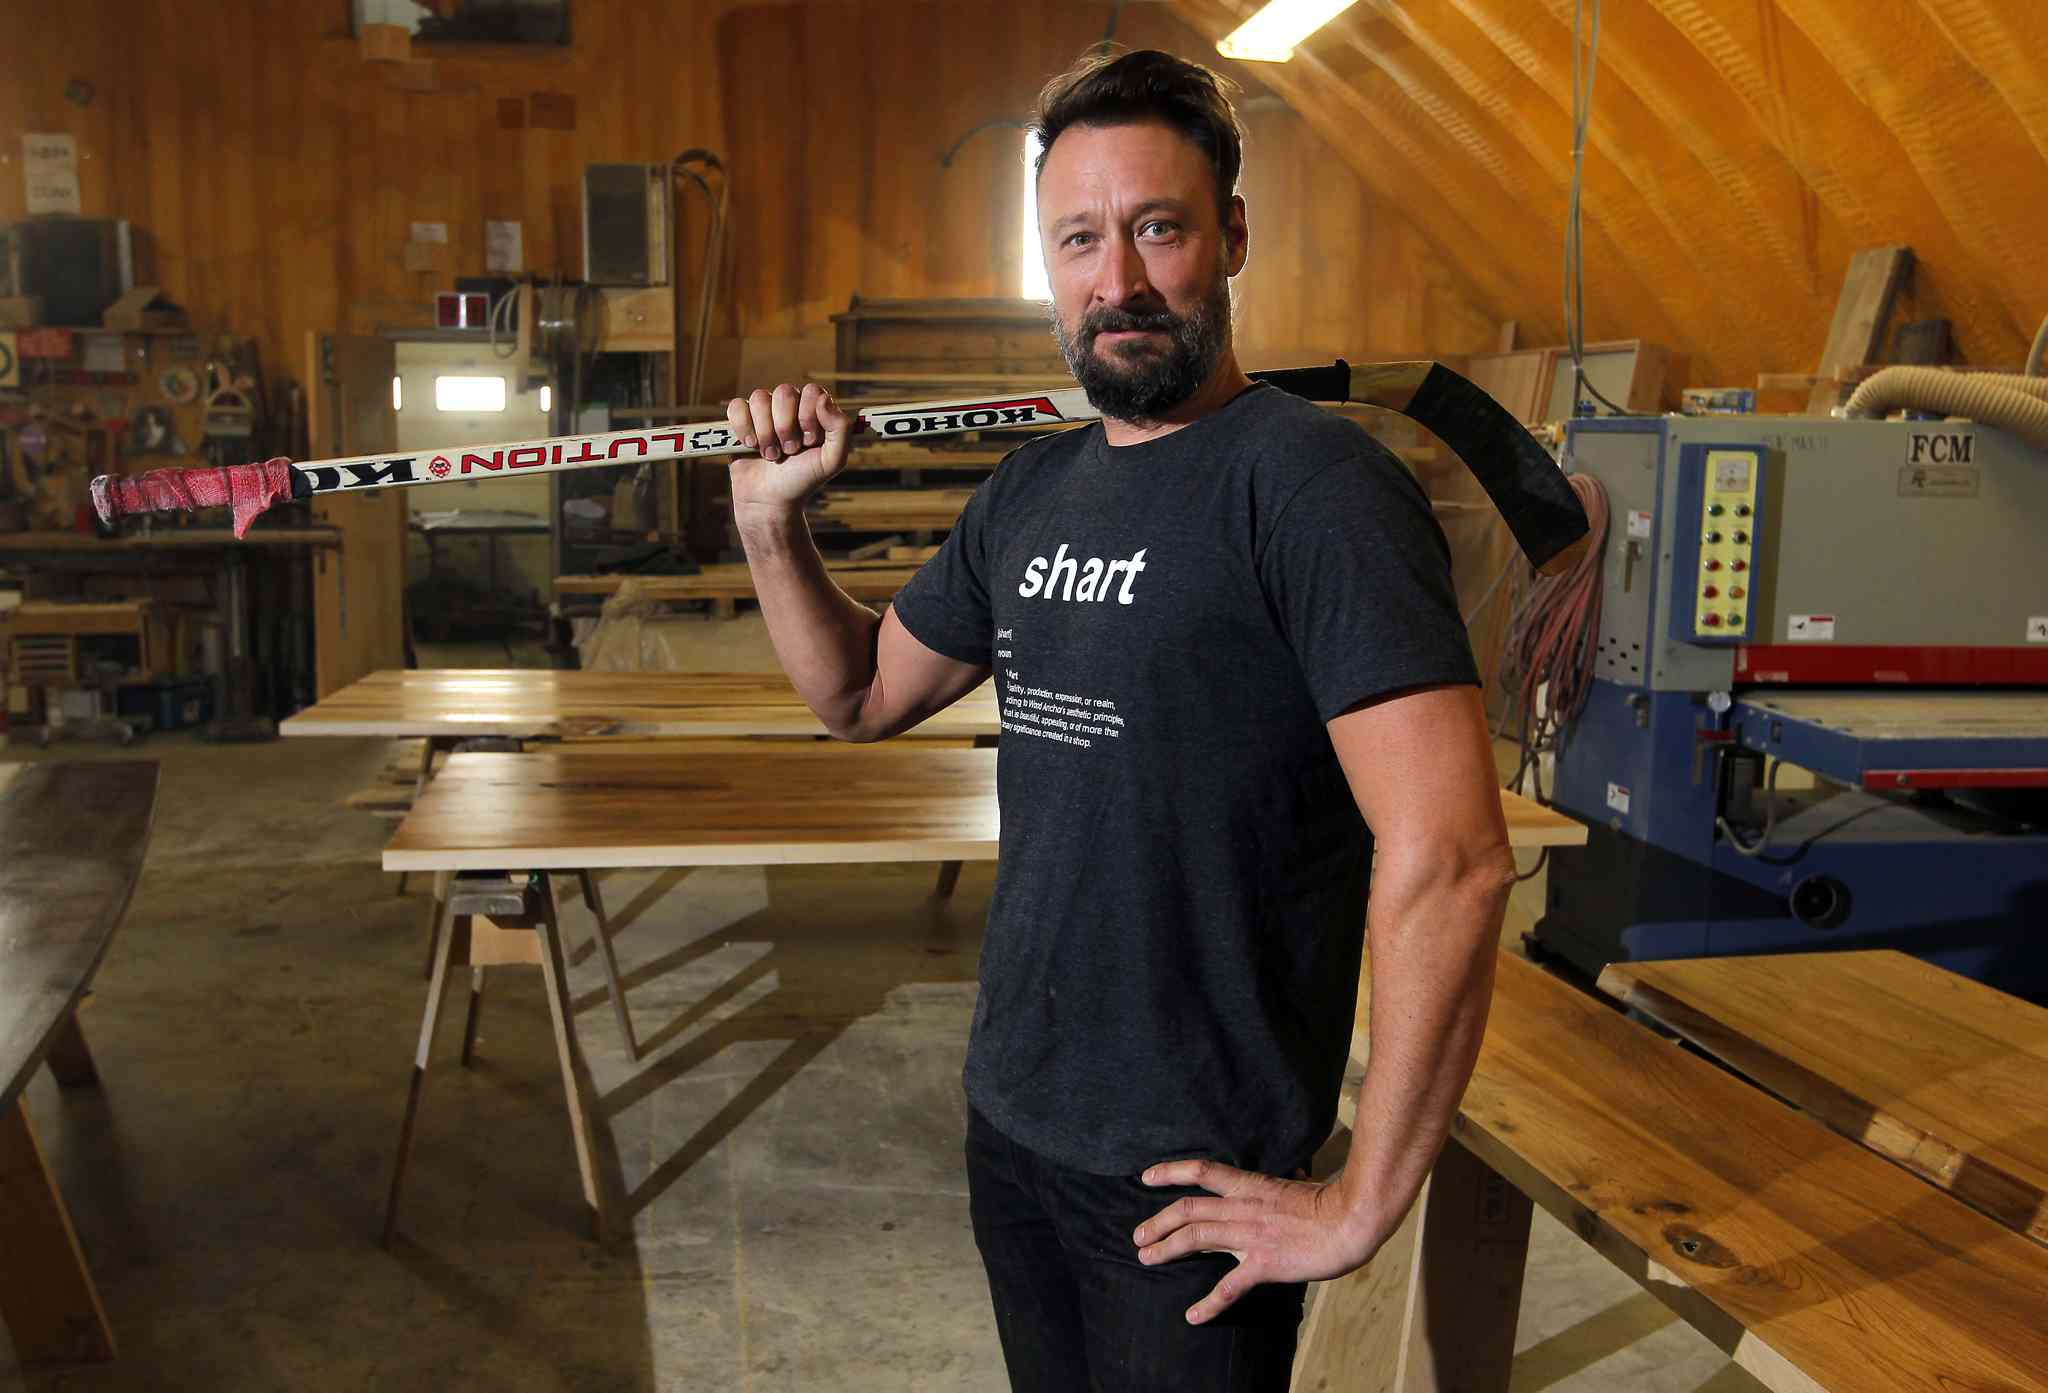 Wood Anchor's Jason Neufeld needs 30 to 40 hockey sticks to create sculptures for The Forks Market, which is undergoing a renovation.